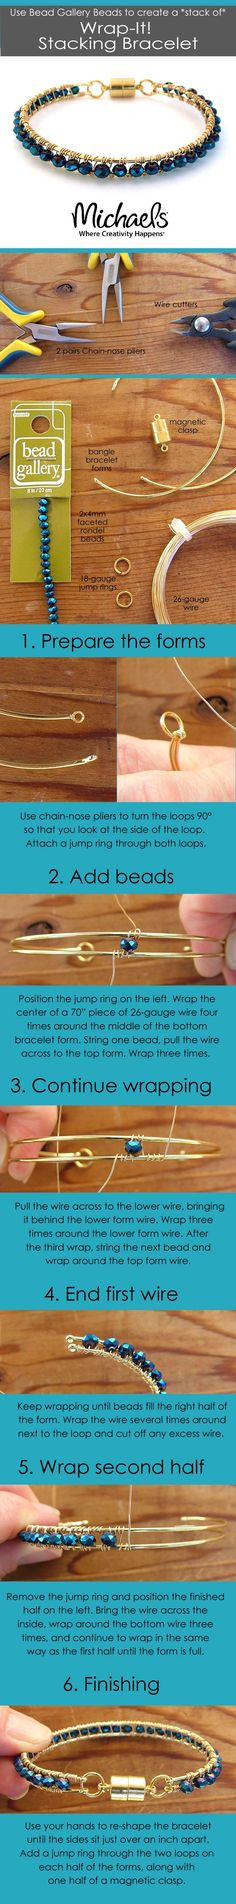 216 best Jewelry images on Pinterest | Diy jewelry, Make jewelry and ...